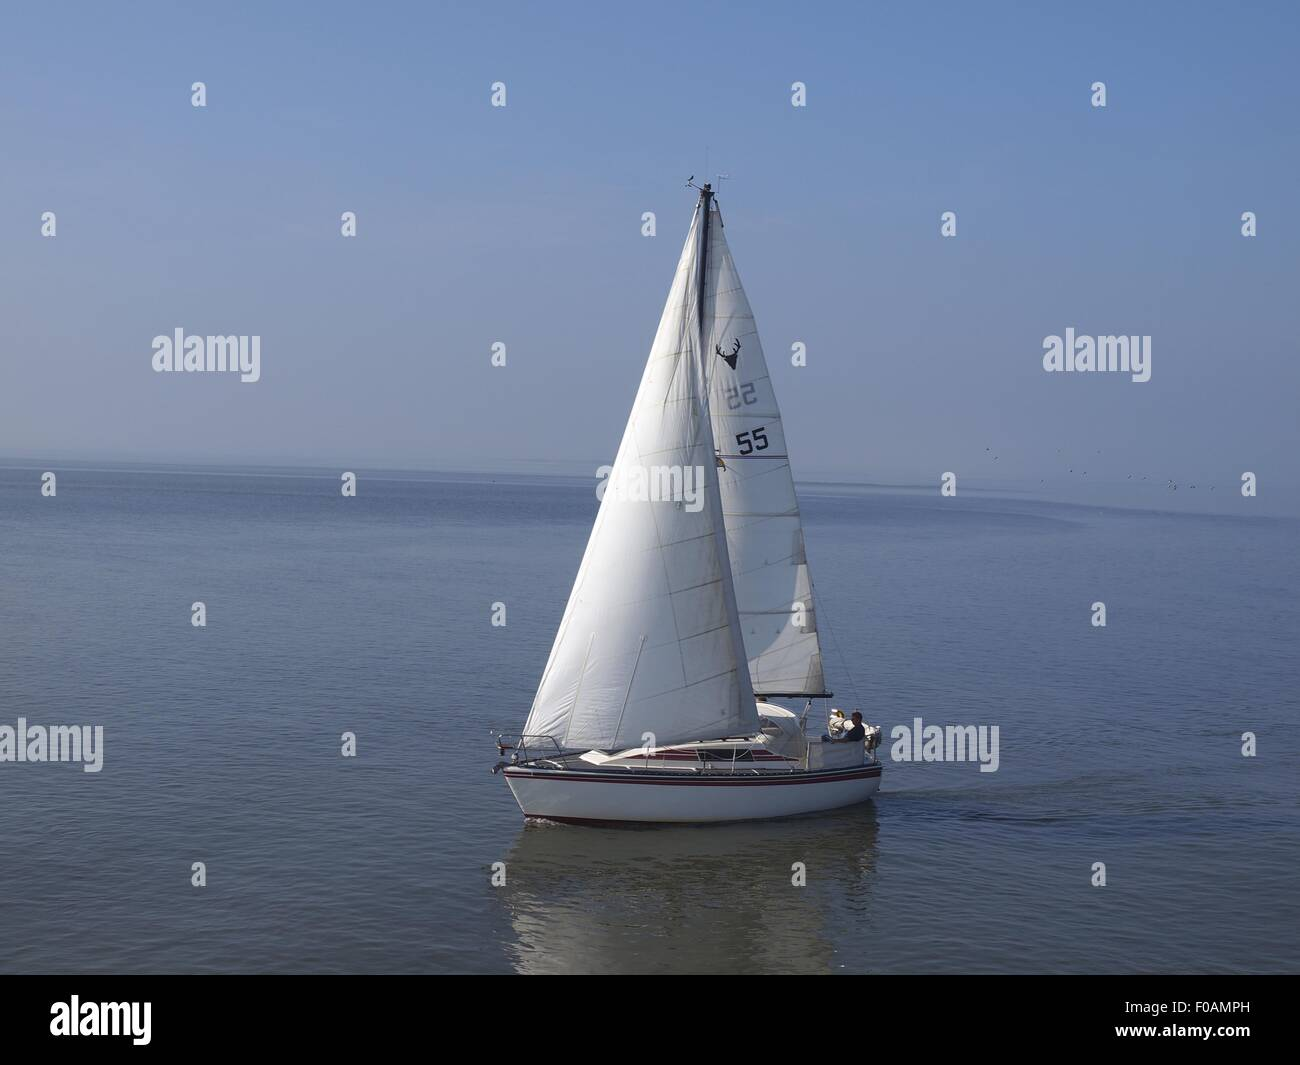 Sailboat in sea at Spiekeroog, Lower Saxony, Germany - Stock Image